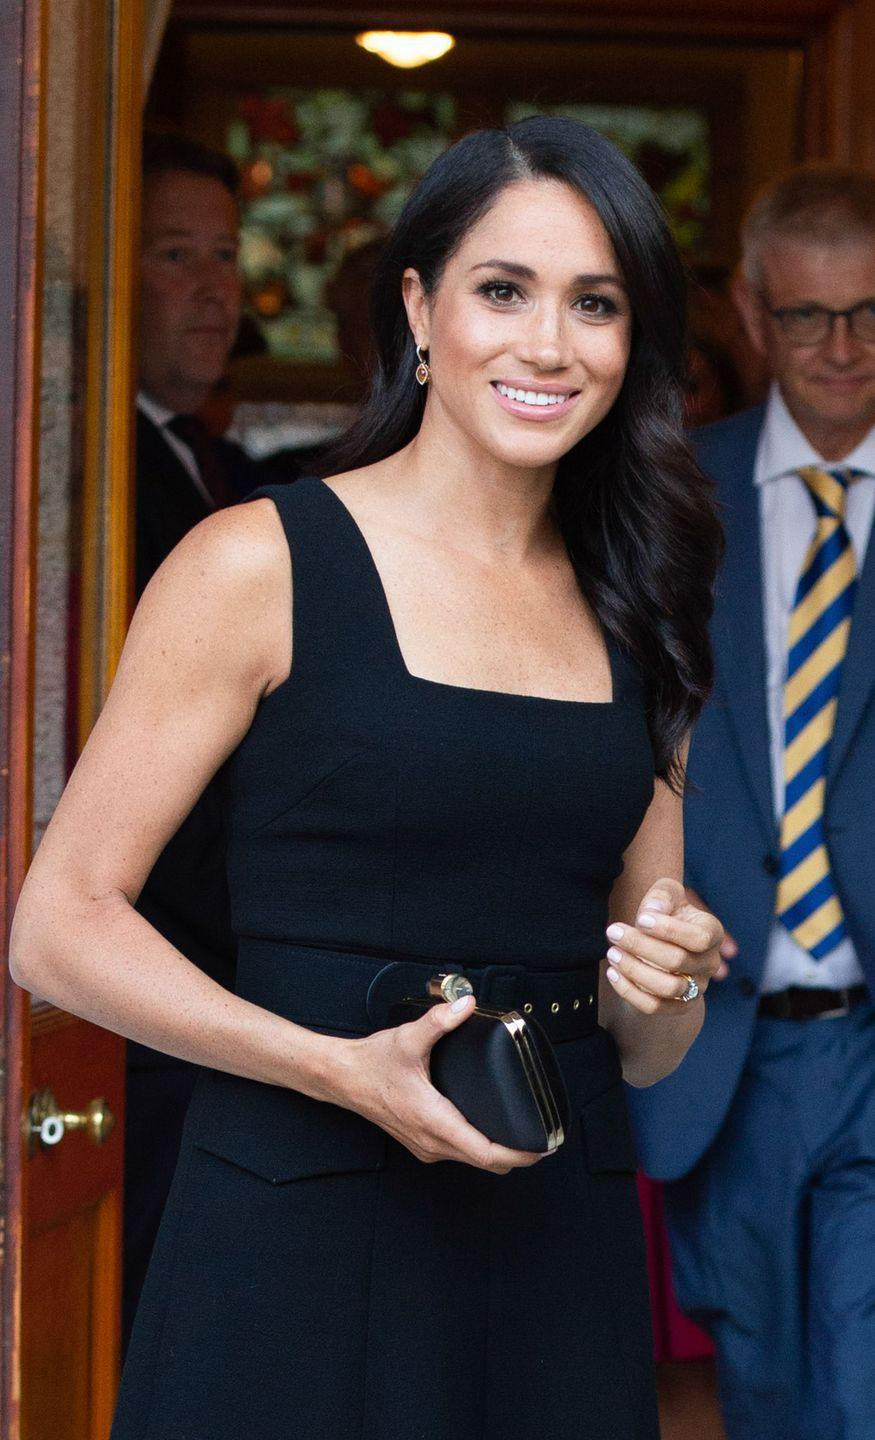 <p>The sleekest, glossiest waves we've seen on Markle during her royal tour of Ireland.</p>